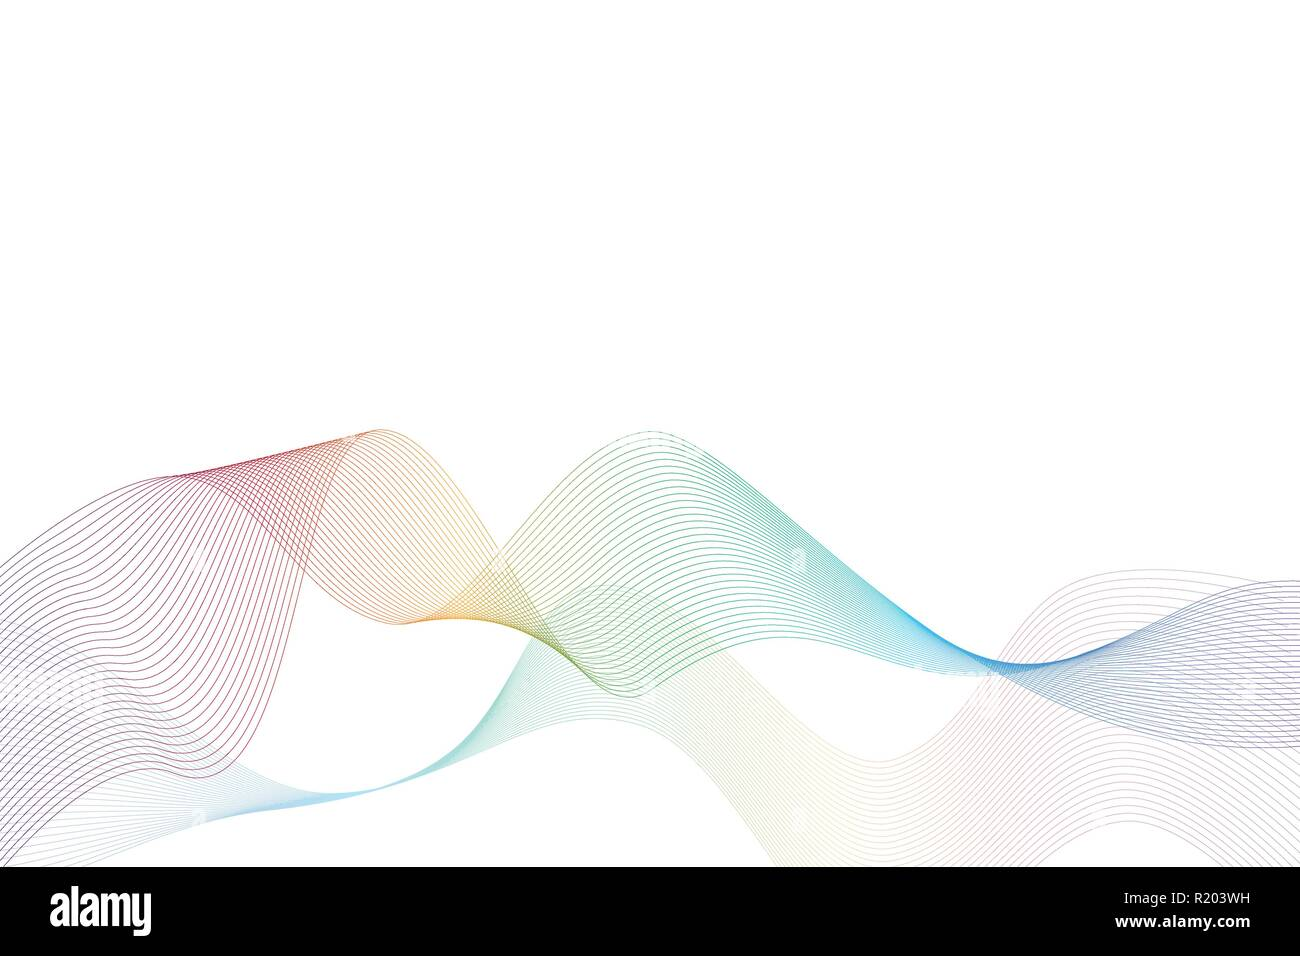 abstract background waves in rainbow colors vector illustration EPS10 Stock Vector